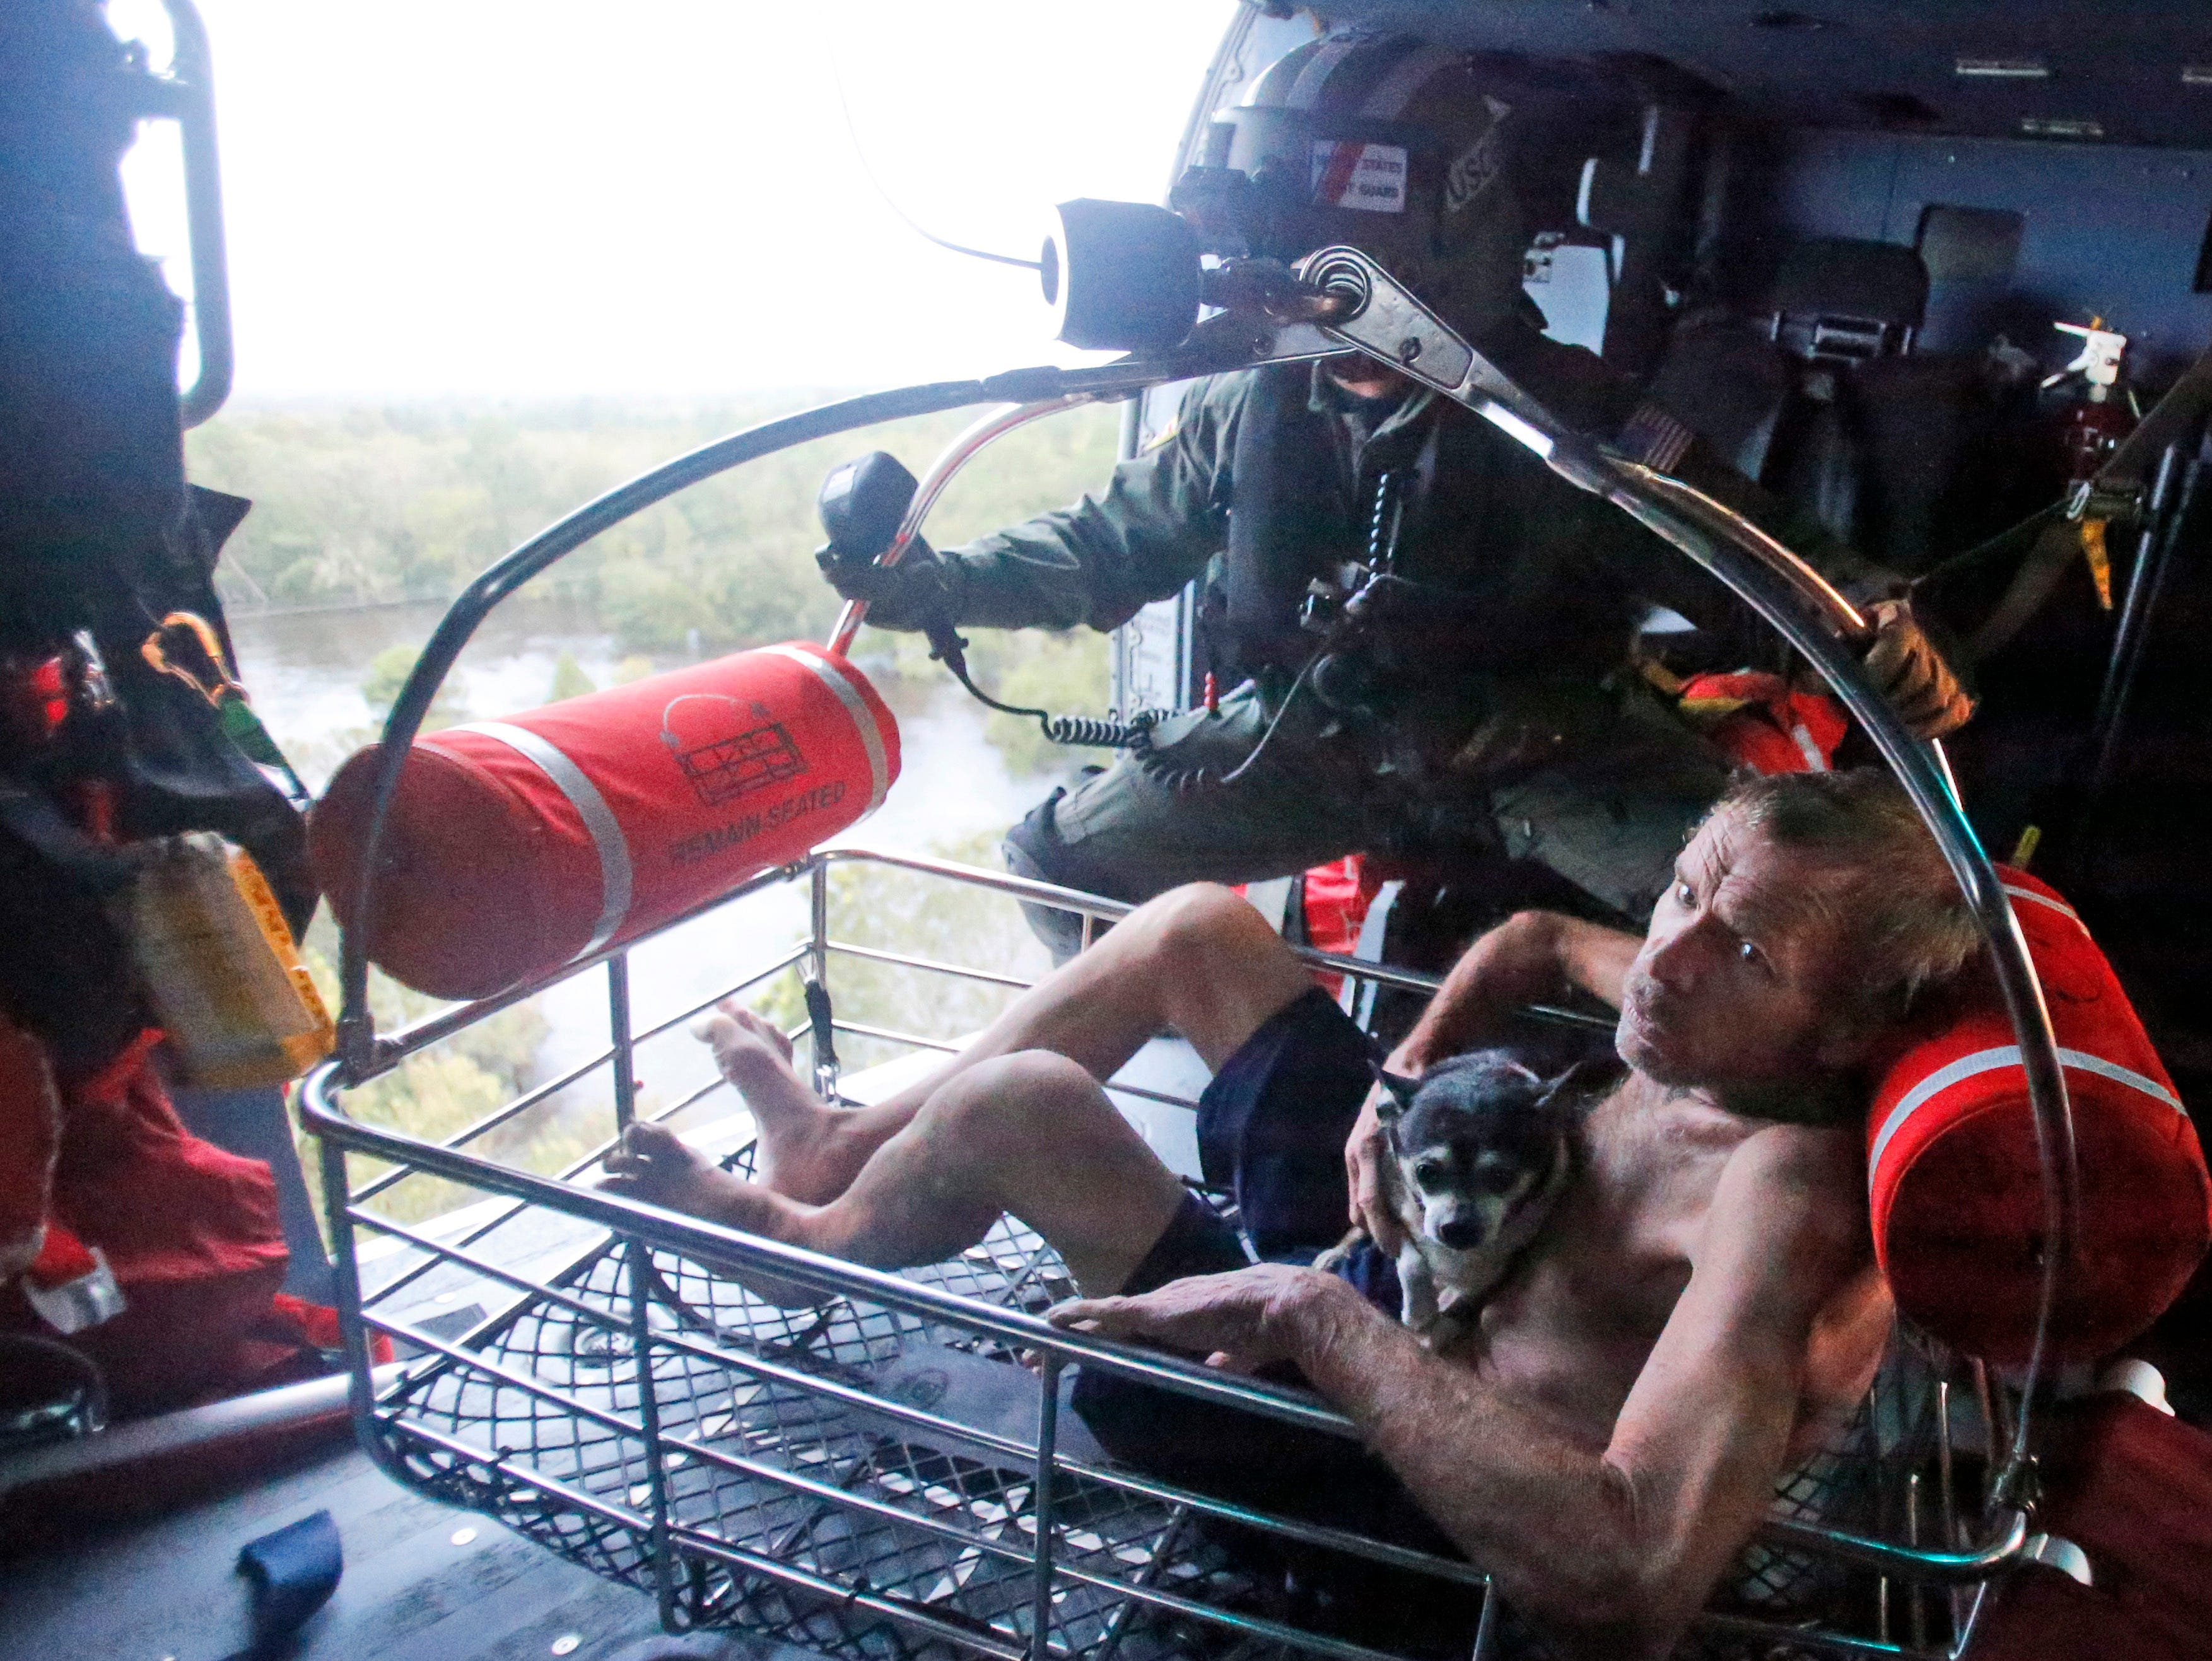 Willie Schubert of Pollocksville, N.C., is hoisted aboard a U.S. Coast Guard helicopter as he is rescued off a stranded van in Pollocksville on Monday, Sept. 17, 2018.